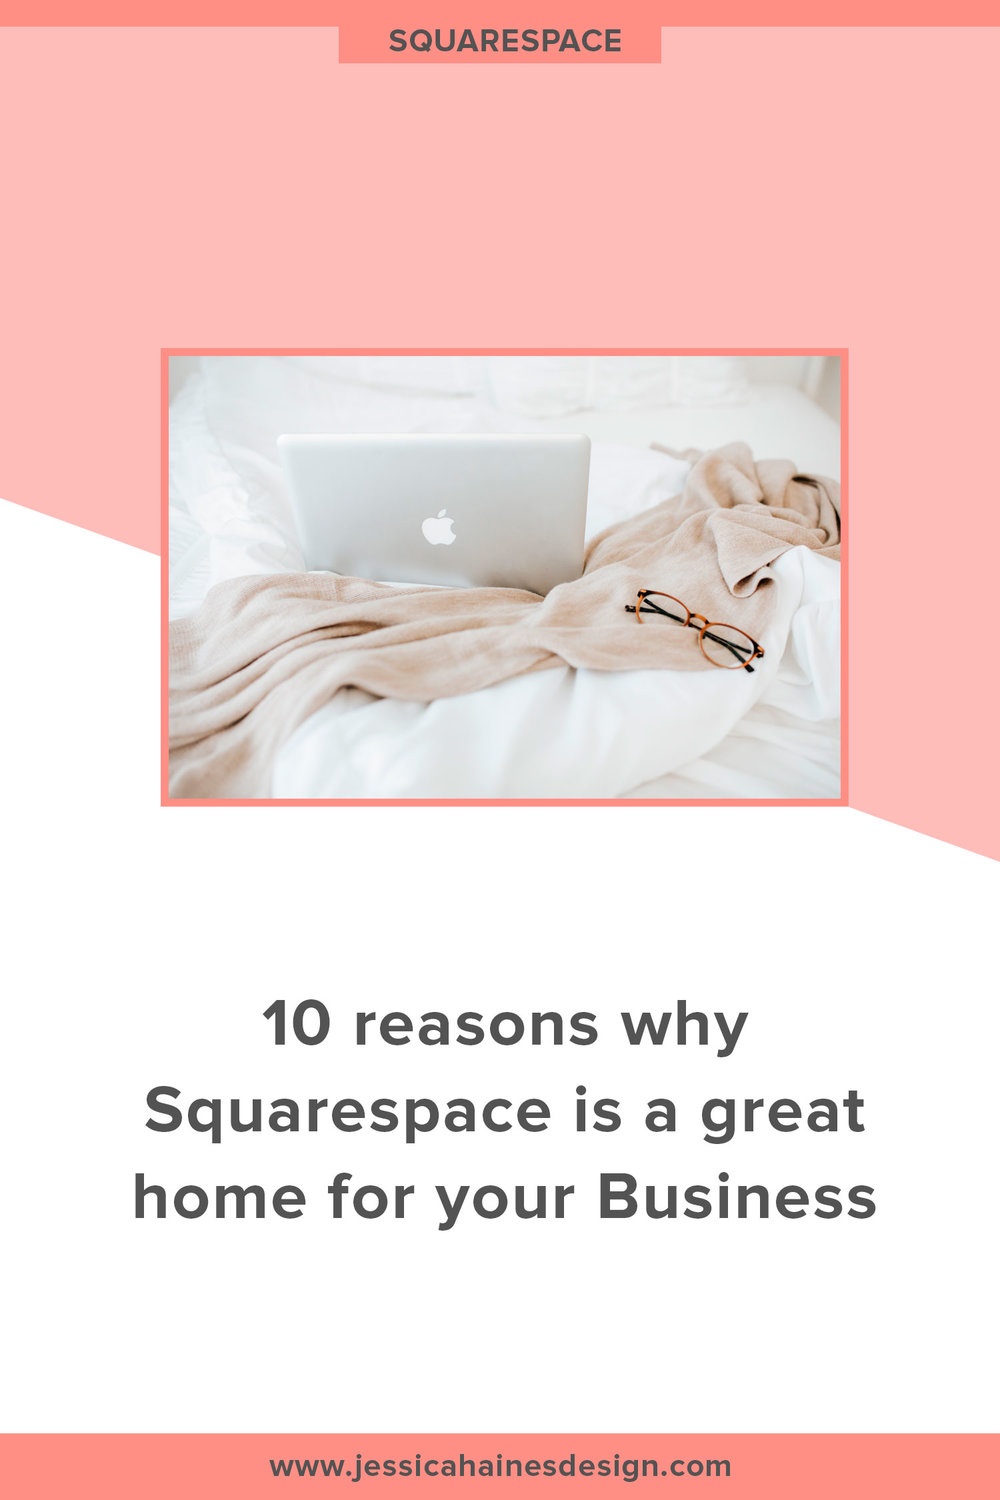 10 Reasons why Squarespace is a great home for your Business. Click through to find out how a Squarespace website could be a good fit for your business website |   www.jessicahainesdesign.com